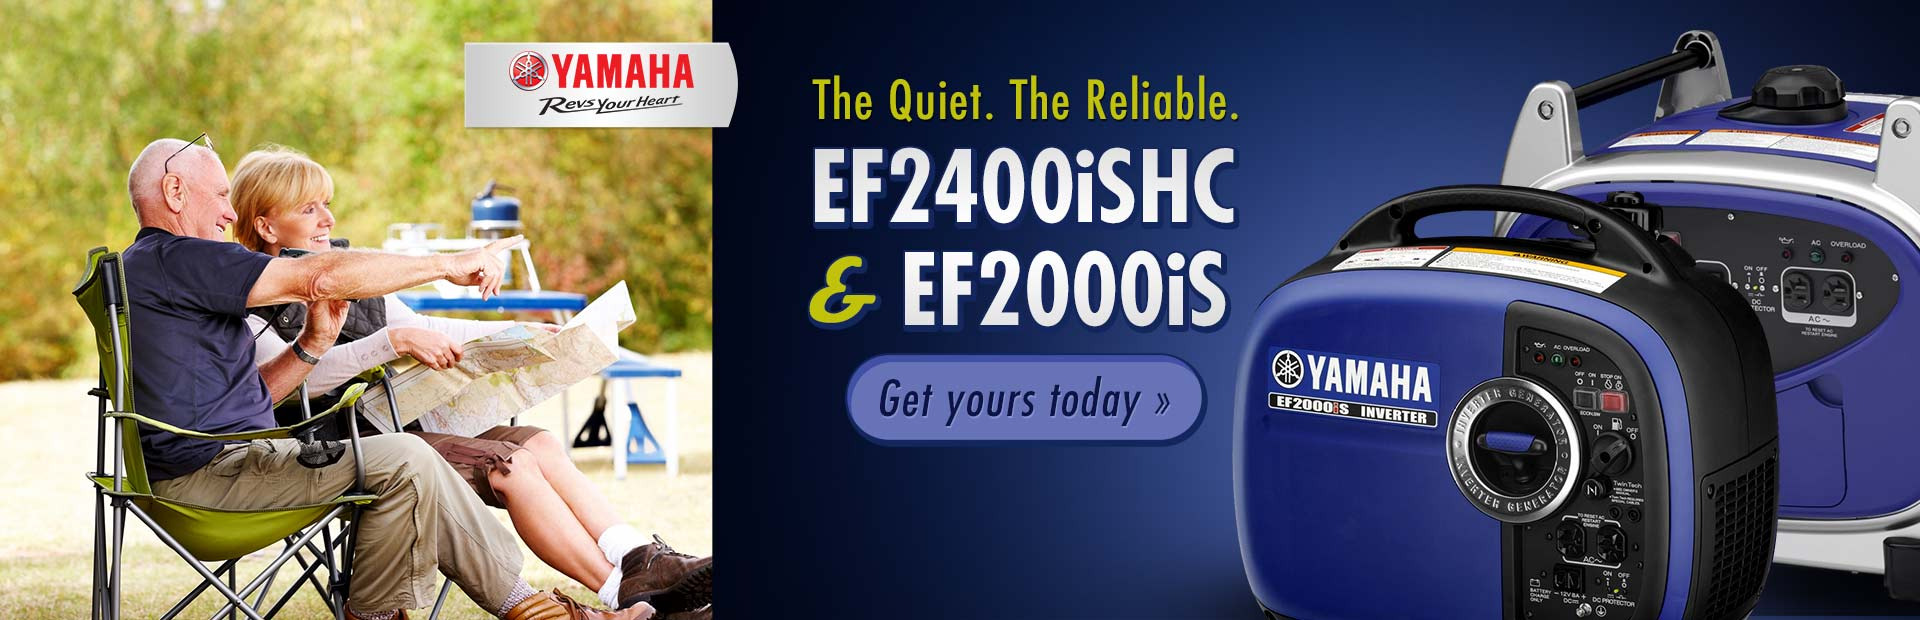 Yamaha EF2400iSHC and EF2000iS Generators: Click here to view the models.